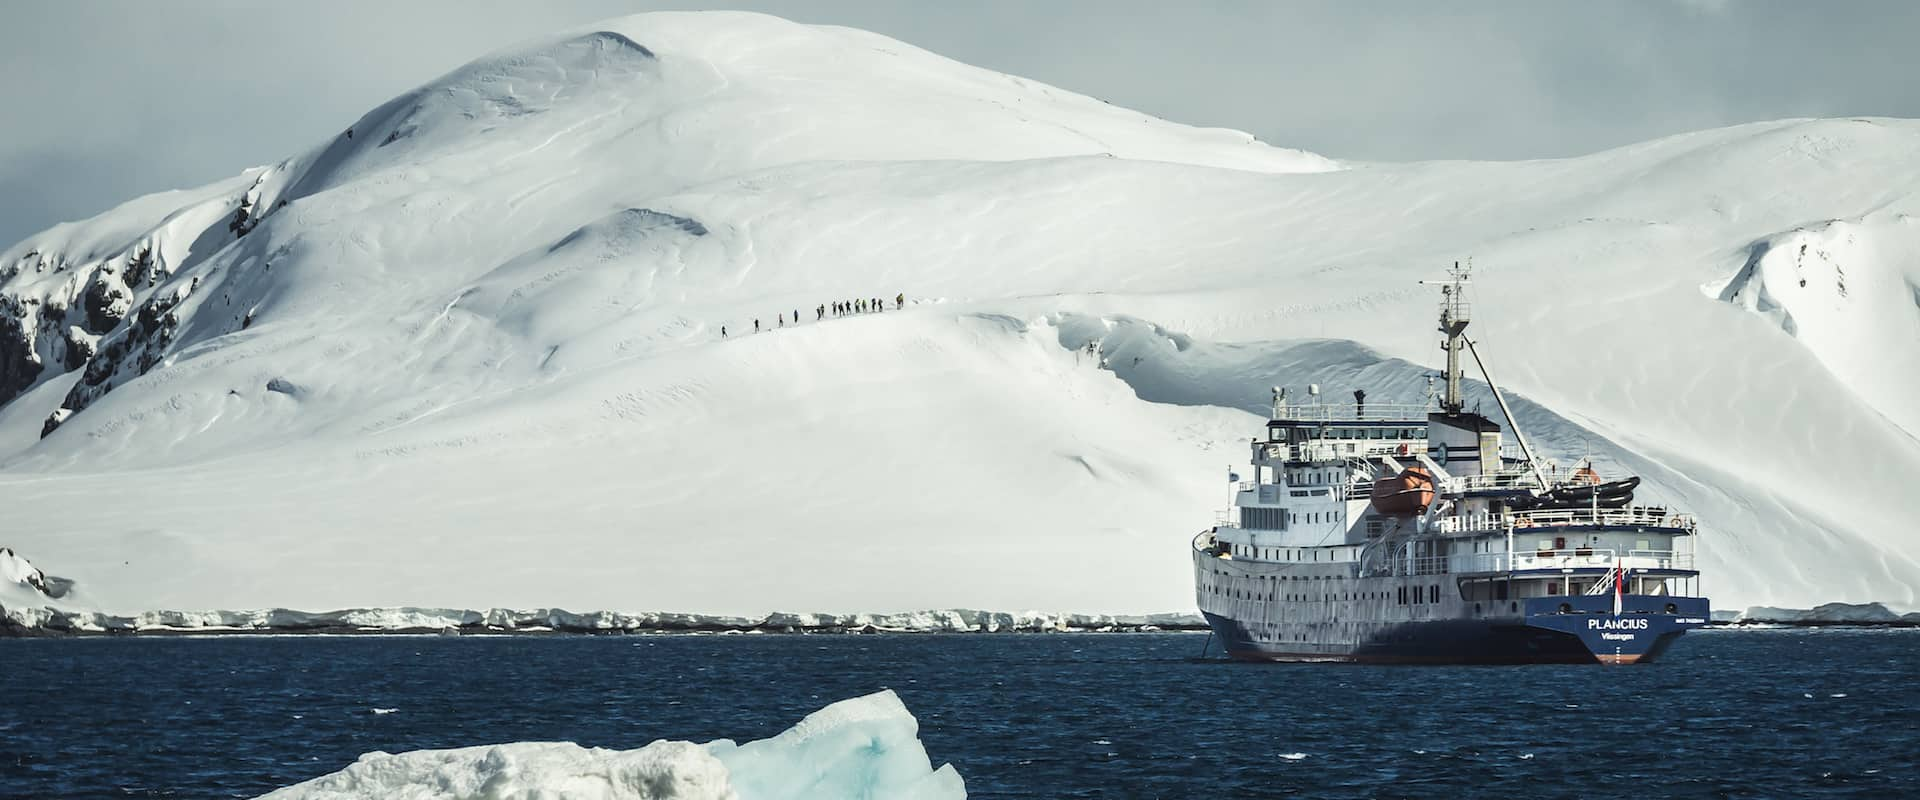 4 Small Ship Cruises in Antarctica - LiveAboard.com